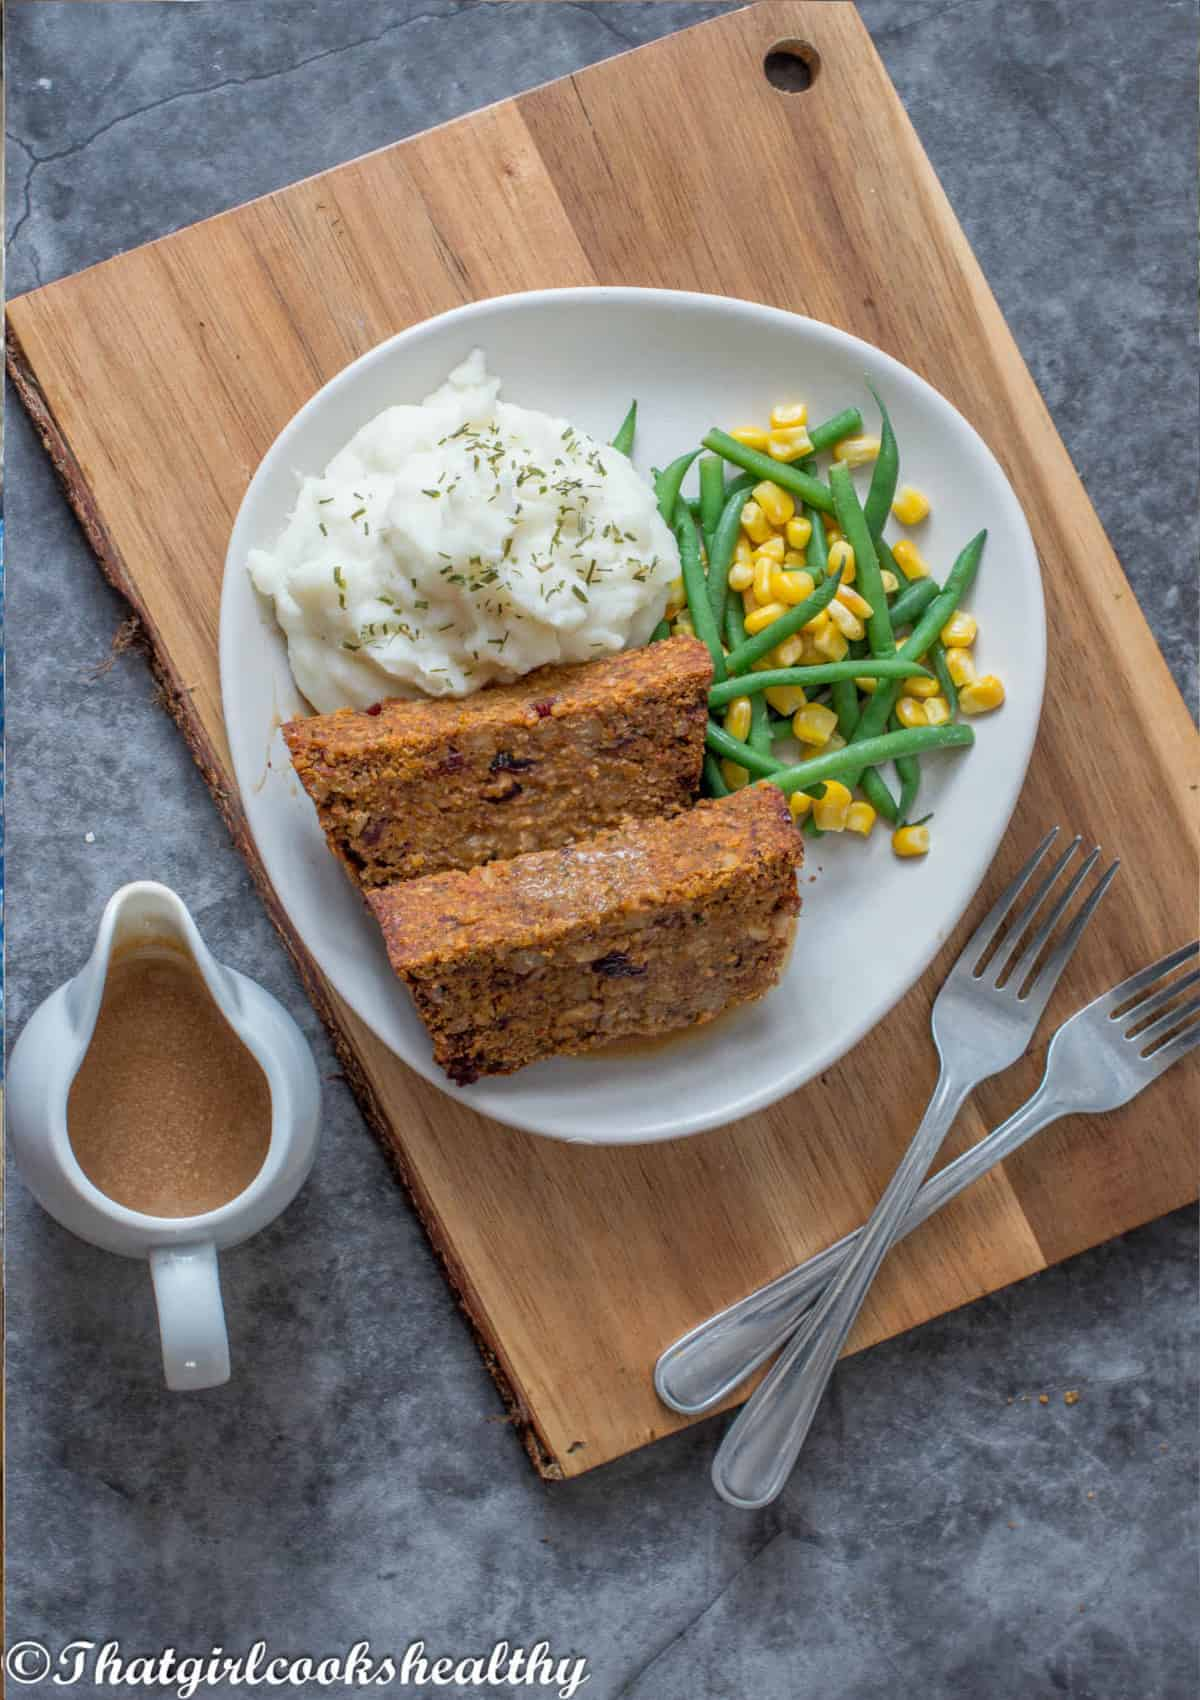 Nut roast, vegetables and mashed potatoes